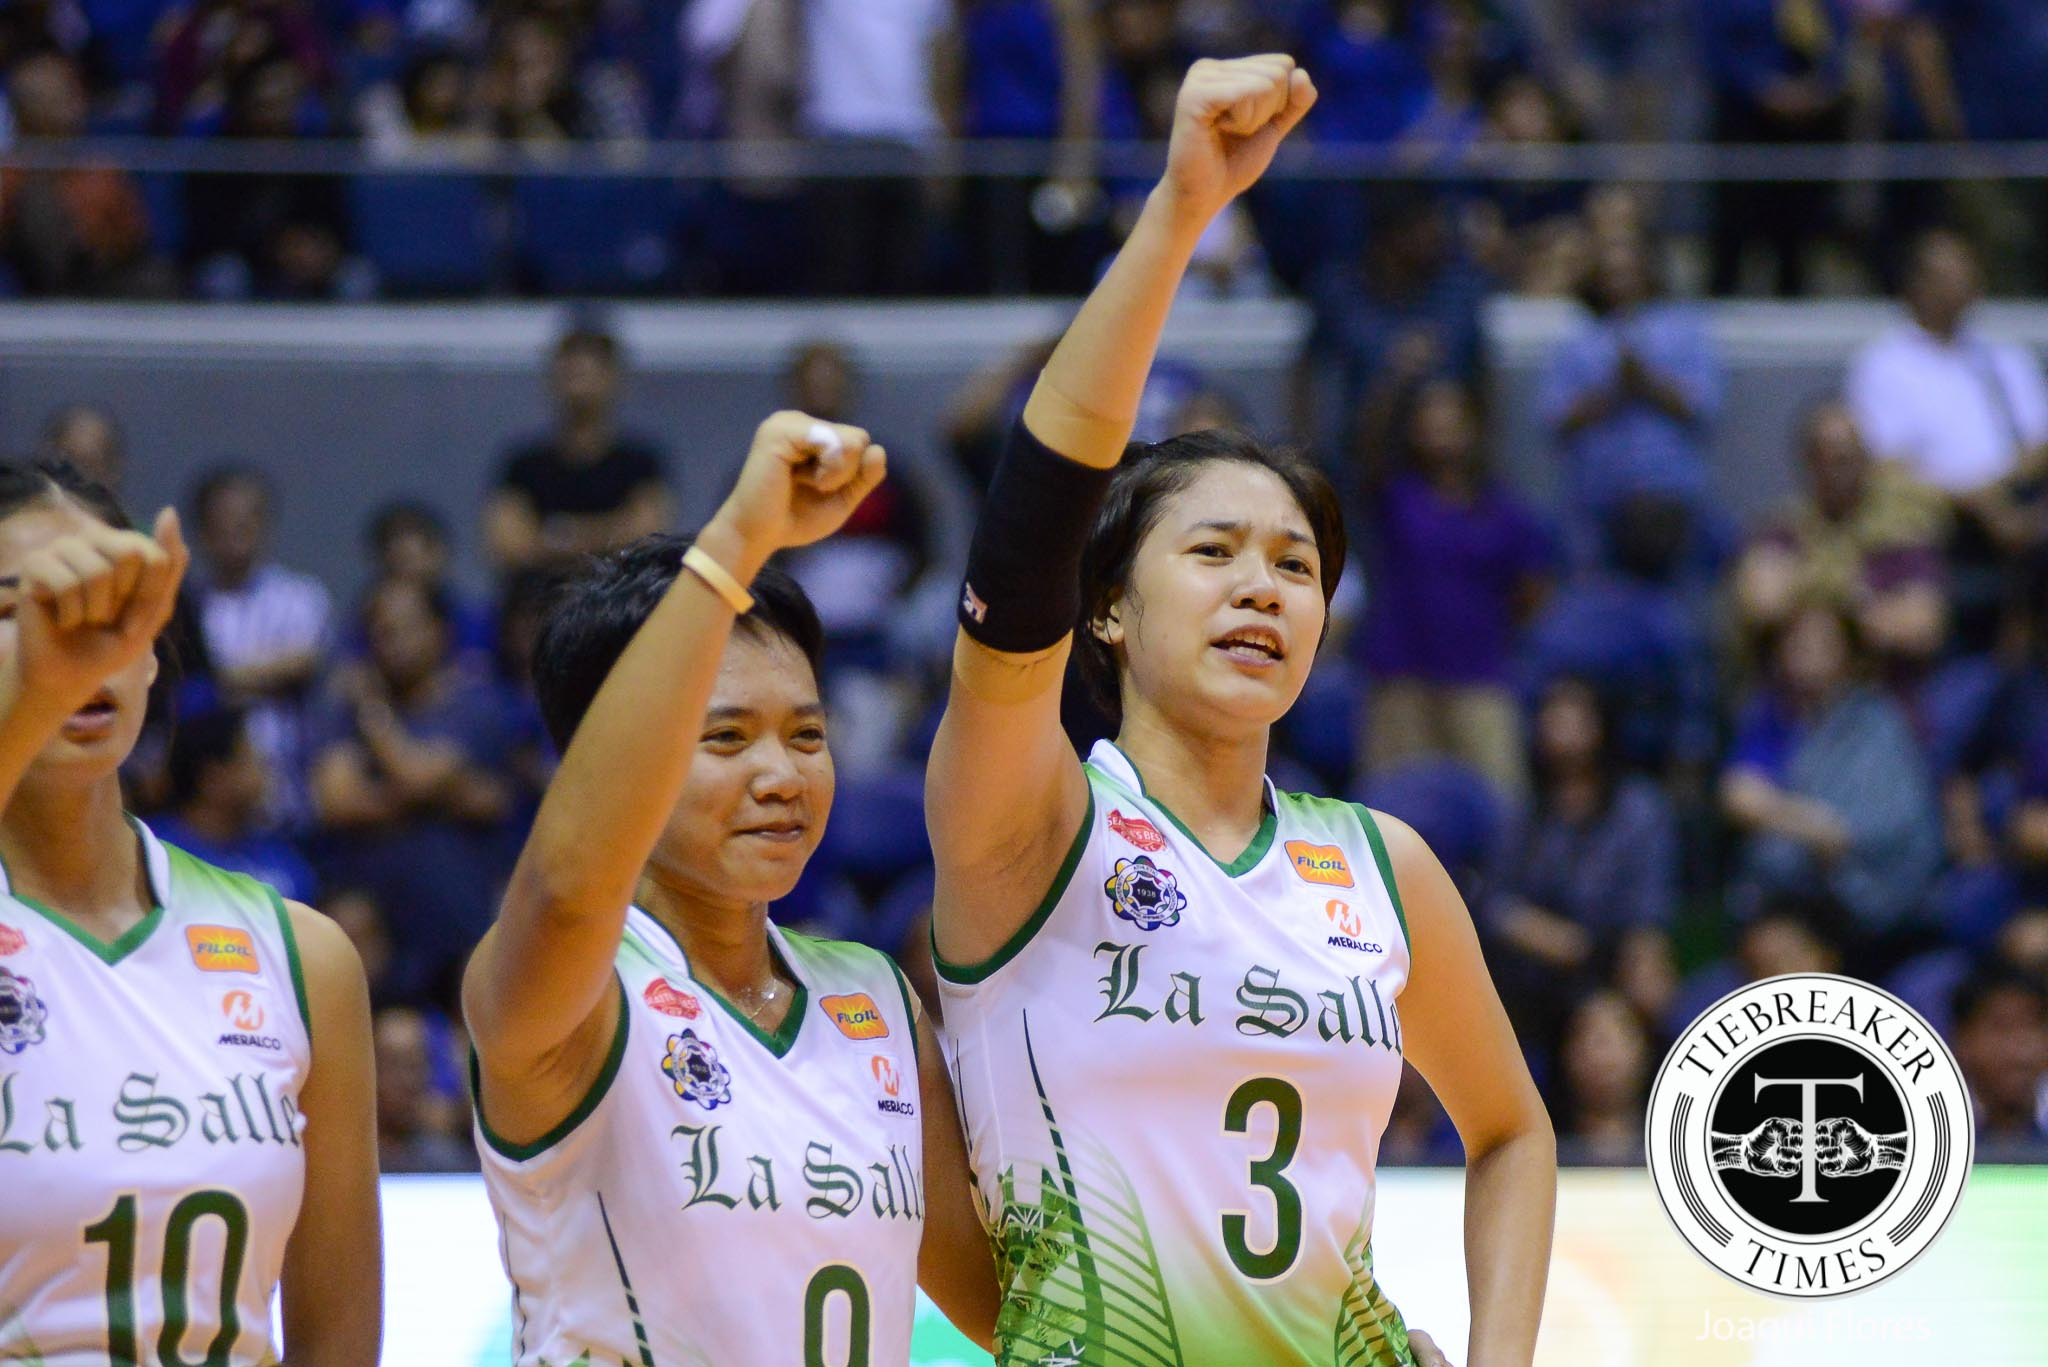 Philippine Sports News - Tiebreaker Times Maraño thrilled with Fajardo, Reyes' growth DLSU News UAAP Volleyball  UAAP Season 78 Women's Volleyball UAAP Season 78 Mika Reyes Kim Fajardo DLSU Women's Volleyball Aby Marano